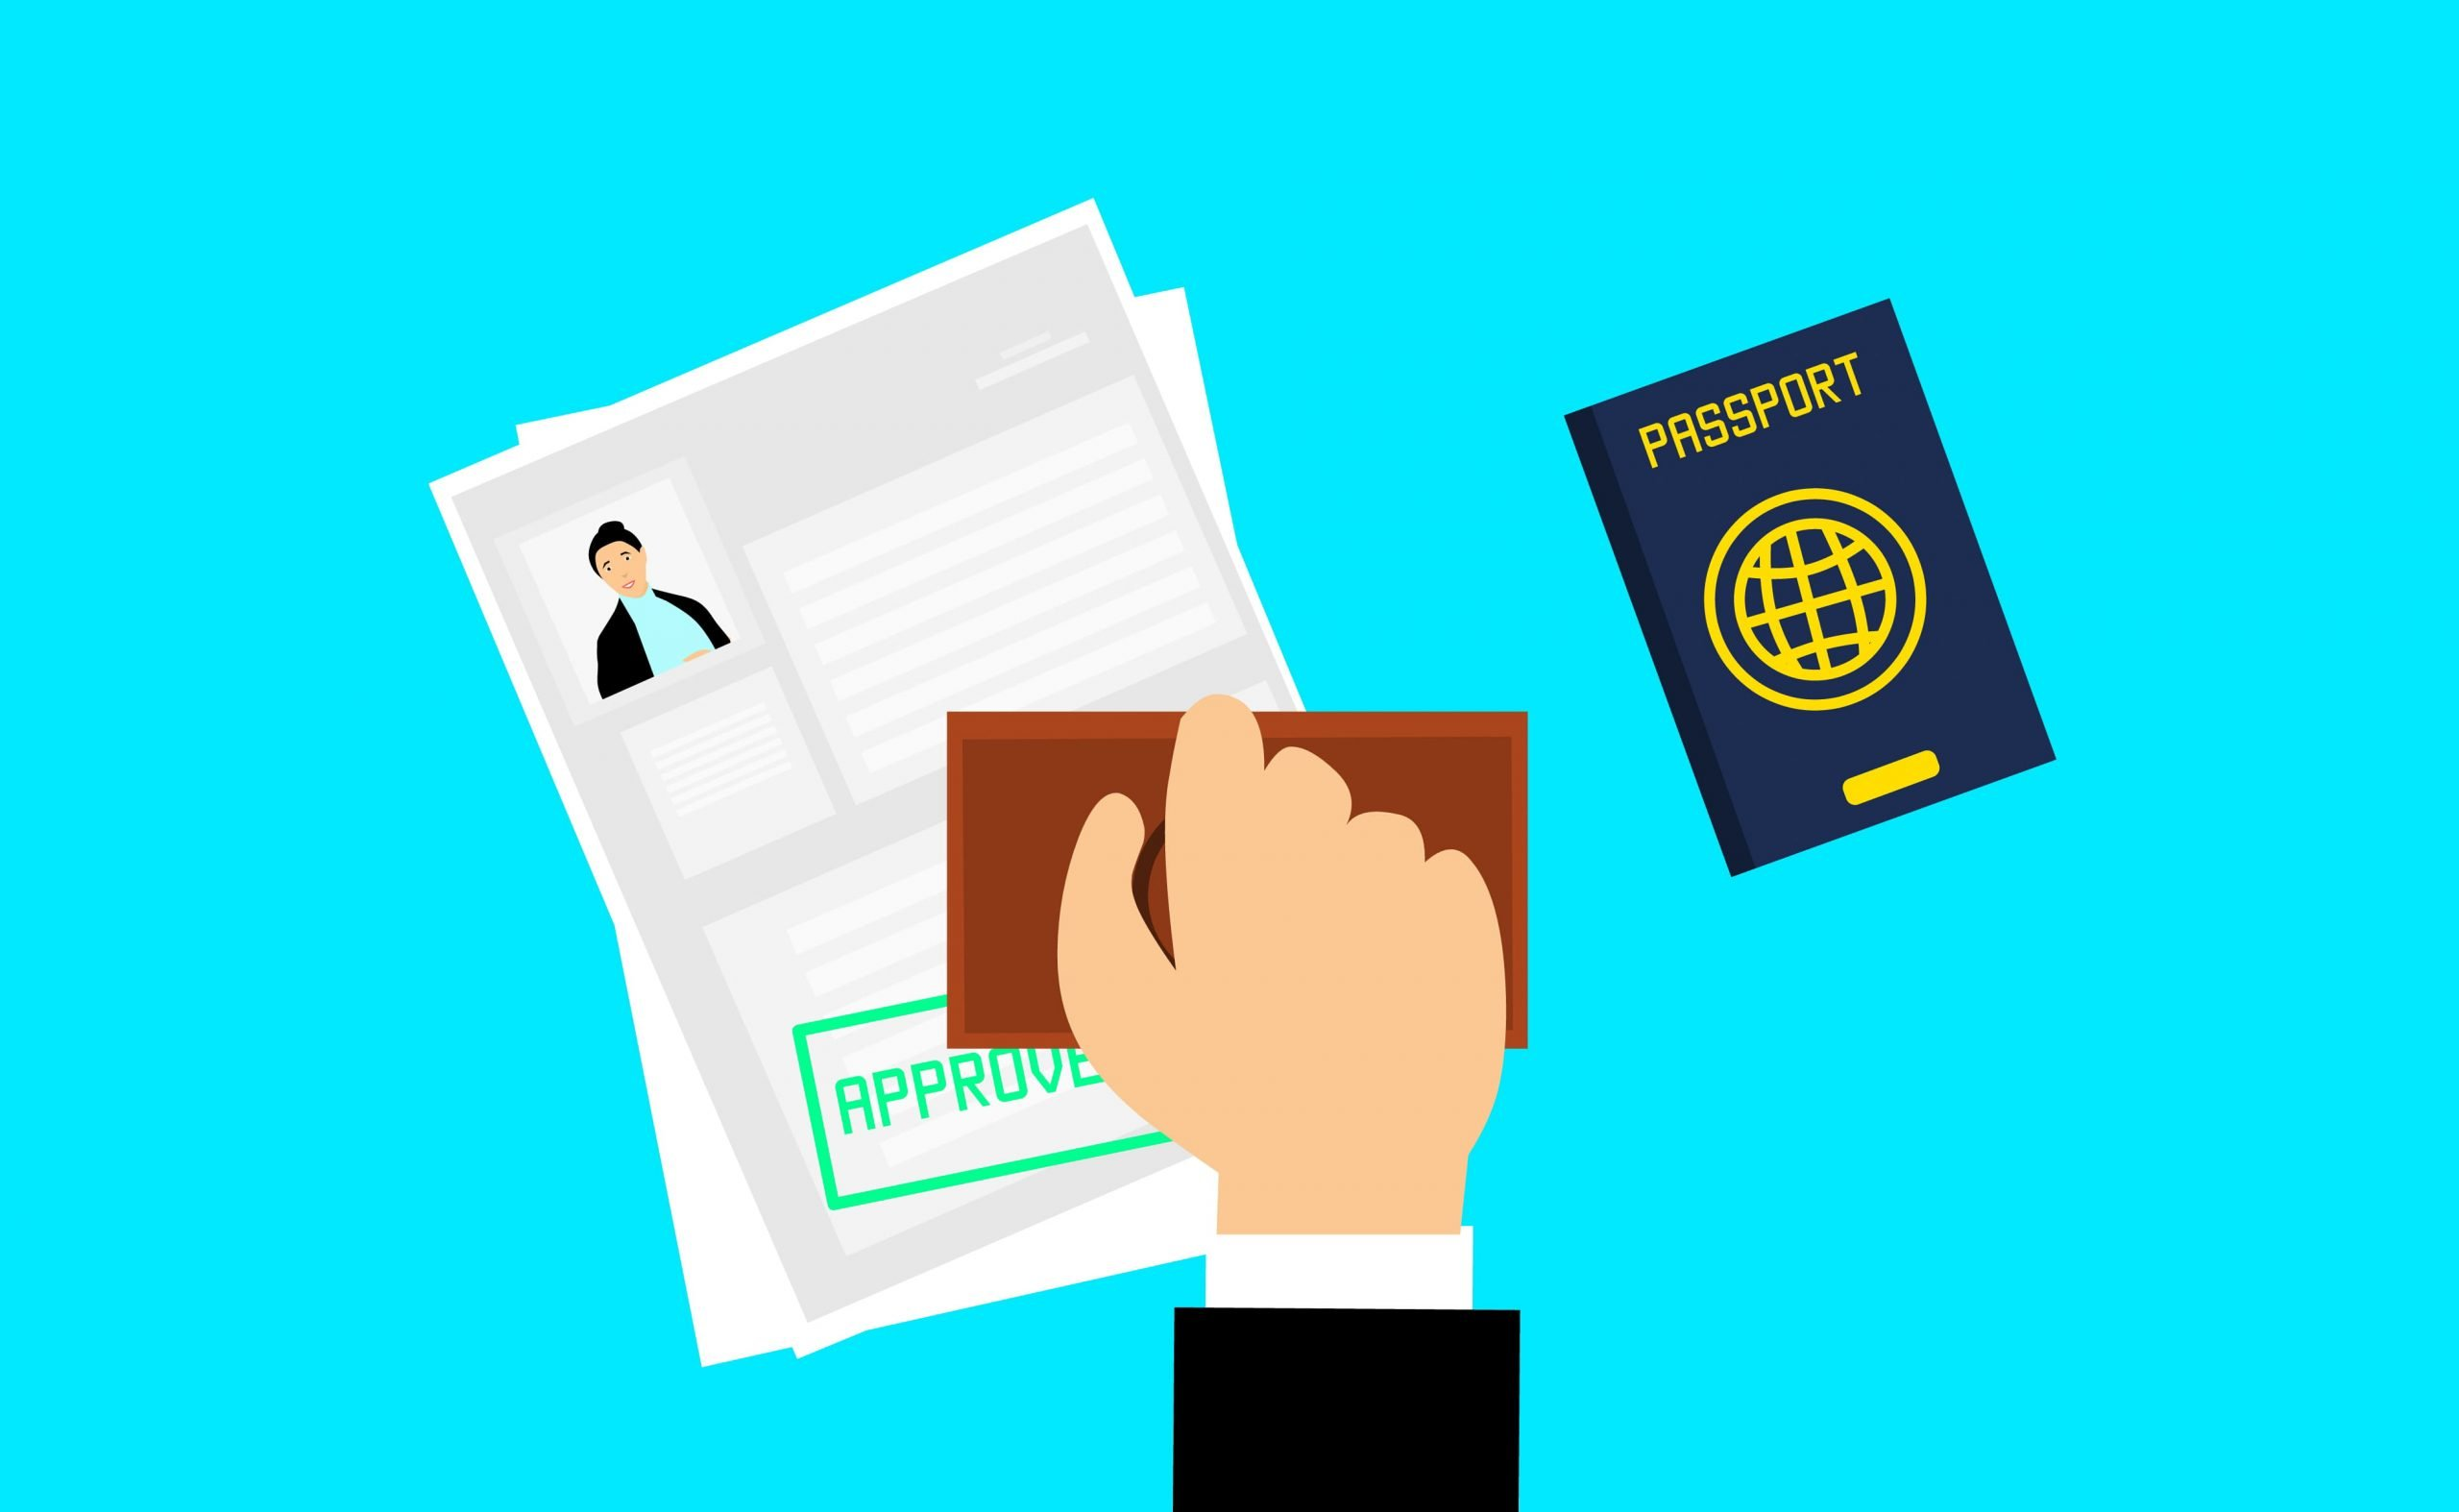 Visa information for travel based on your Passport